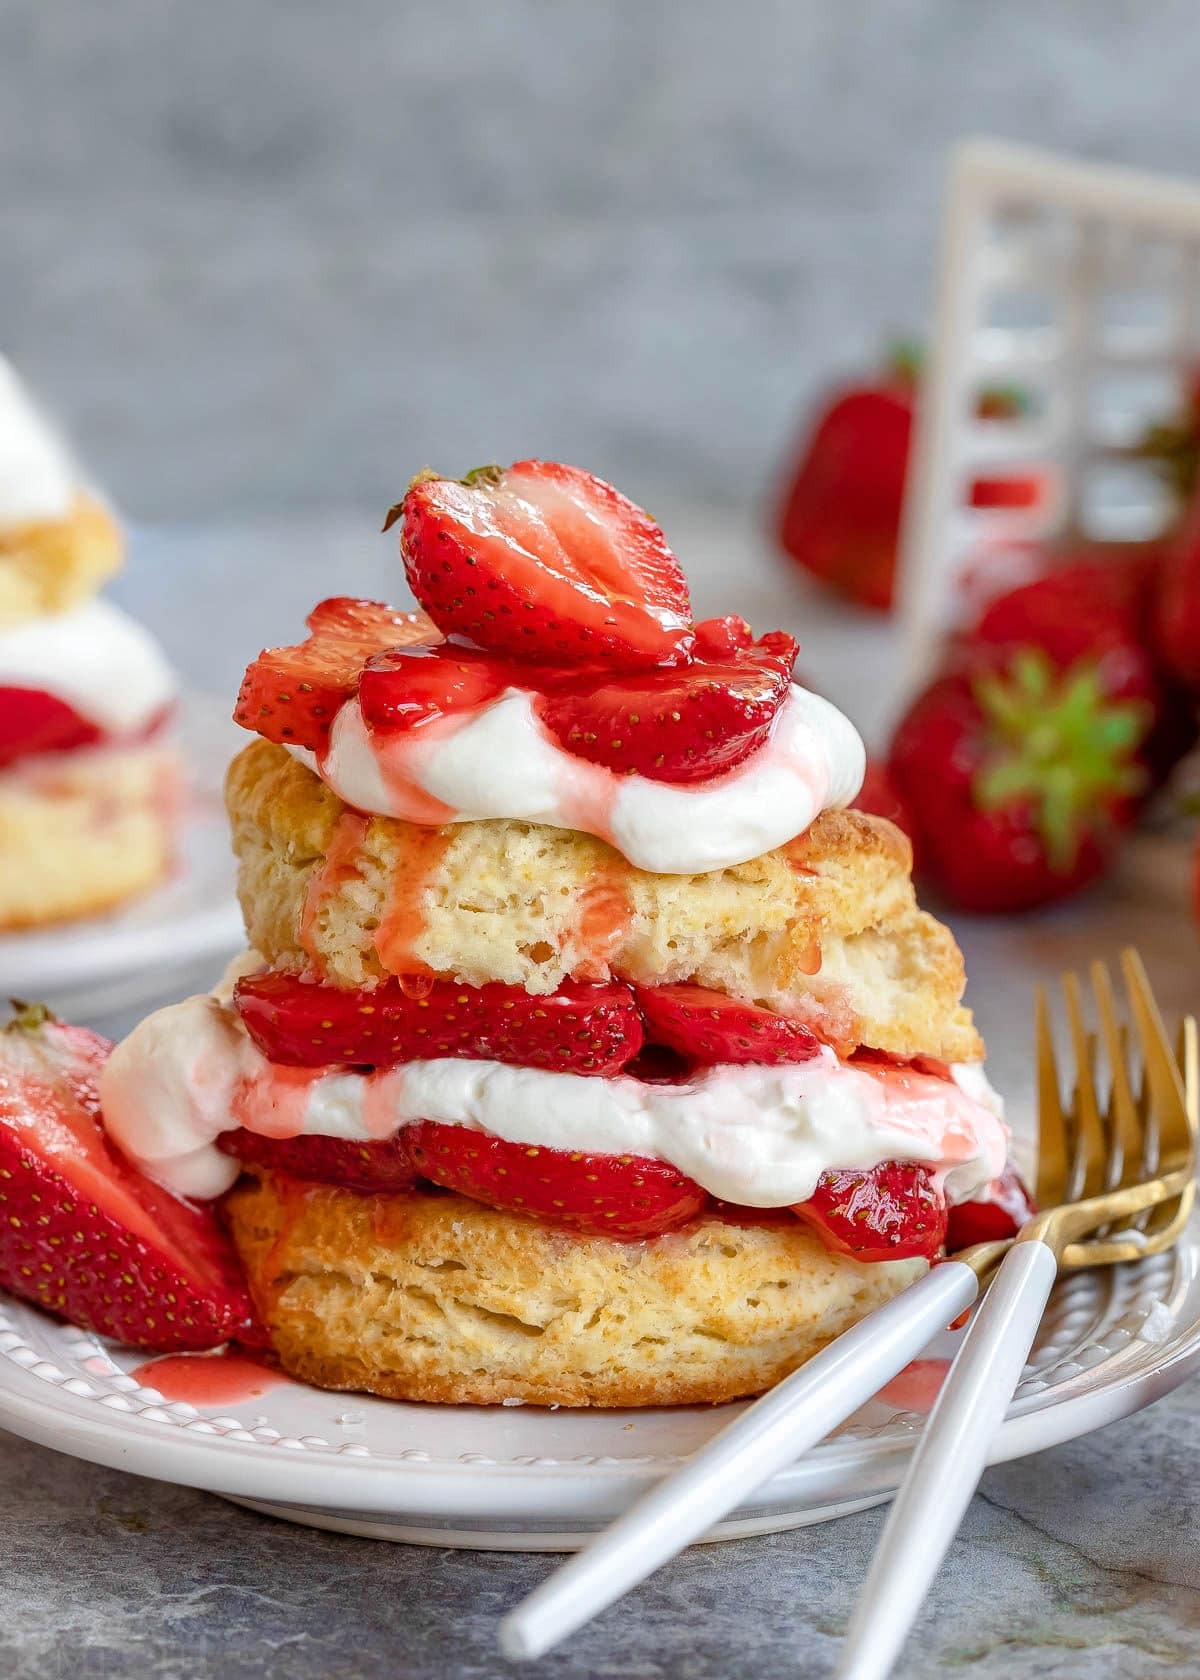 strawberry shortcake made with biscuits and macerated strawberries and fresh whipped cream. Layered on a white plate with two forks sitting on the edge of the plate.